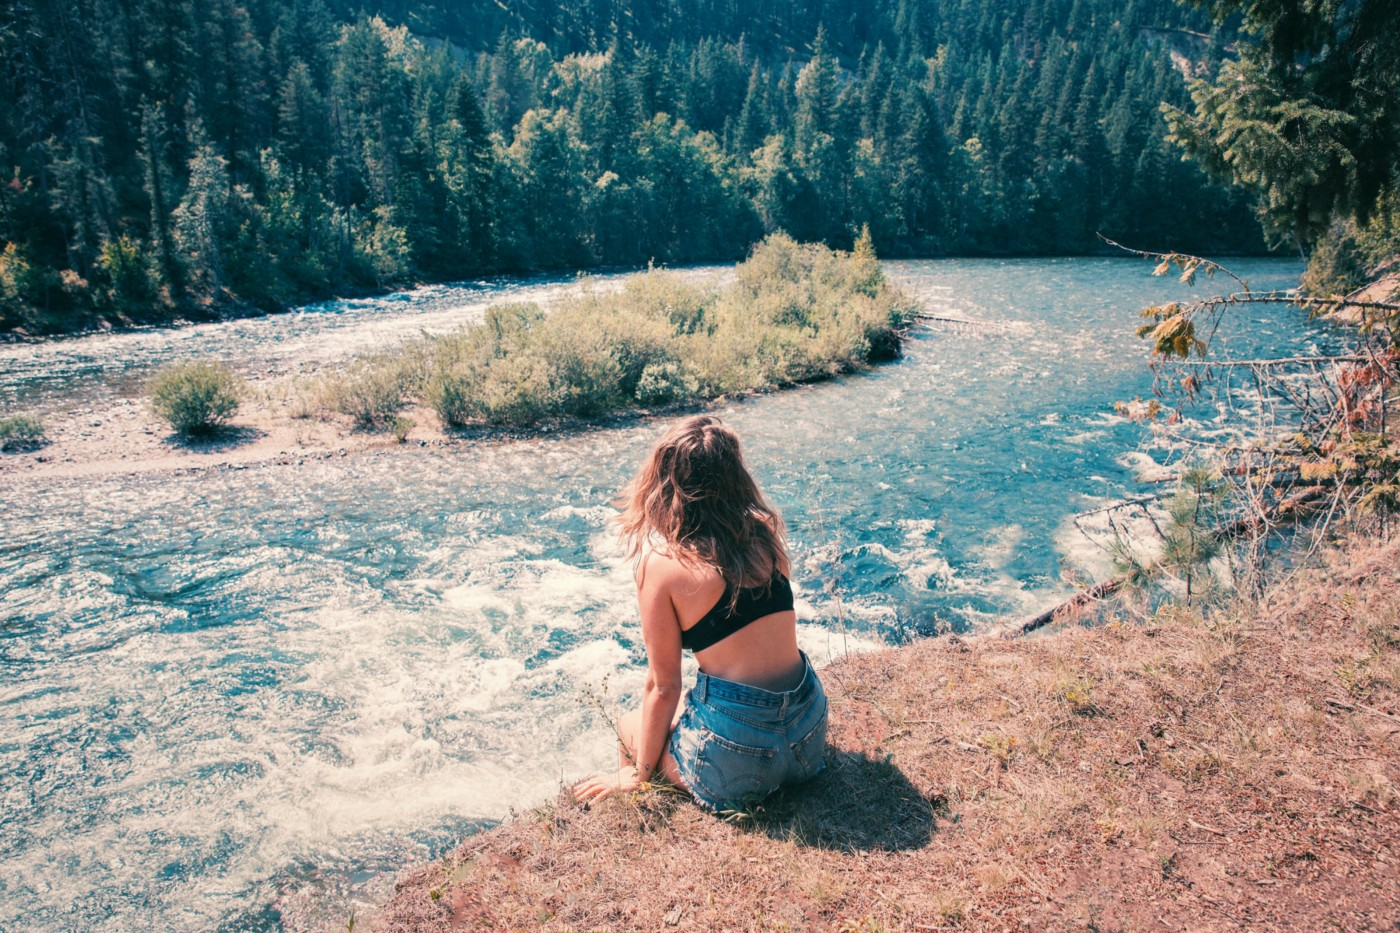 A person sitting by a river.